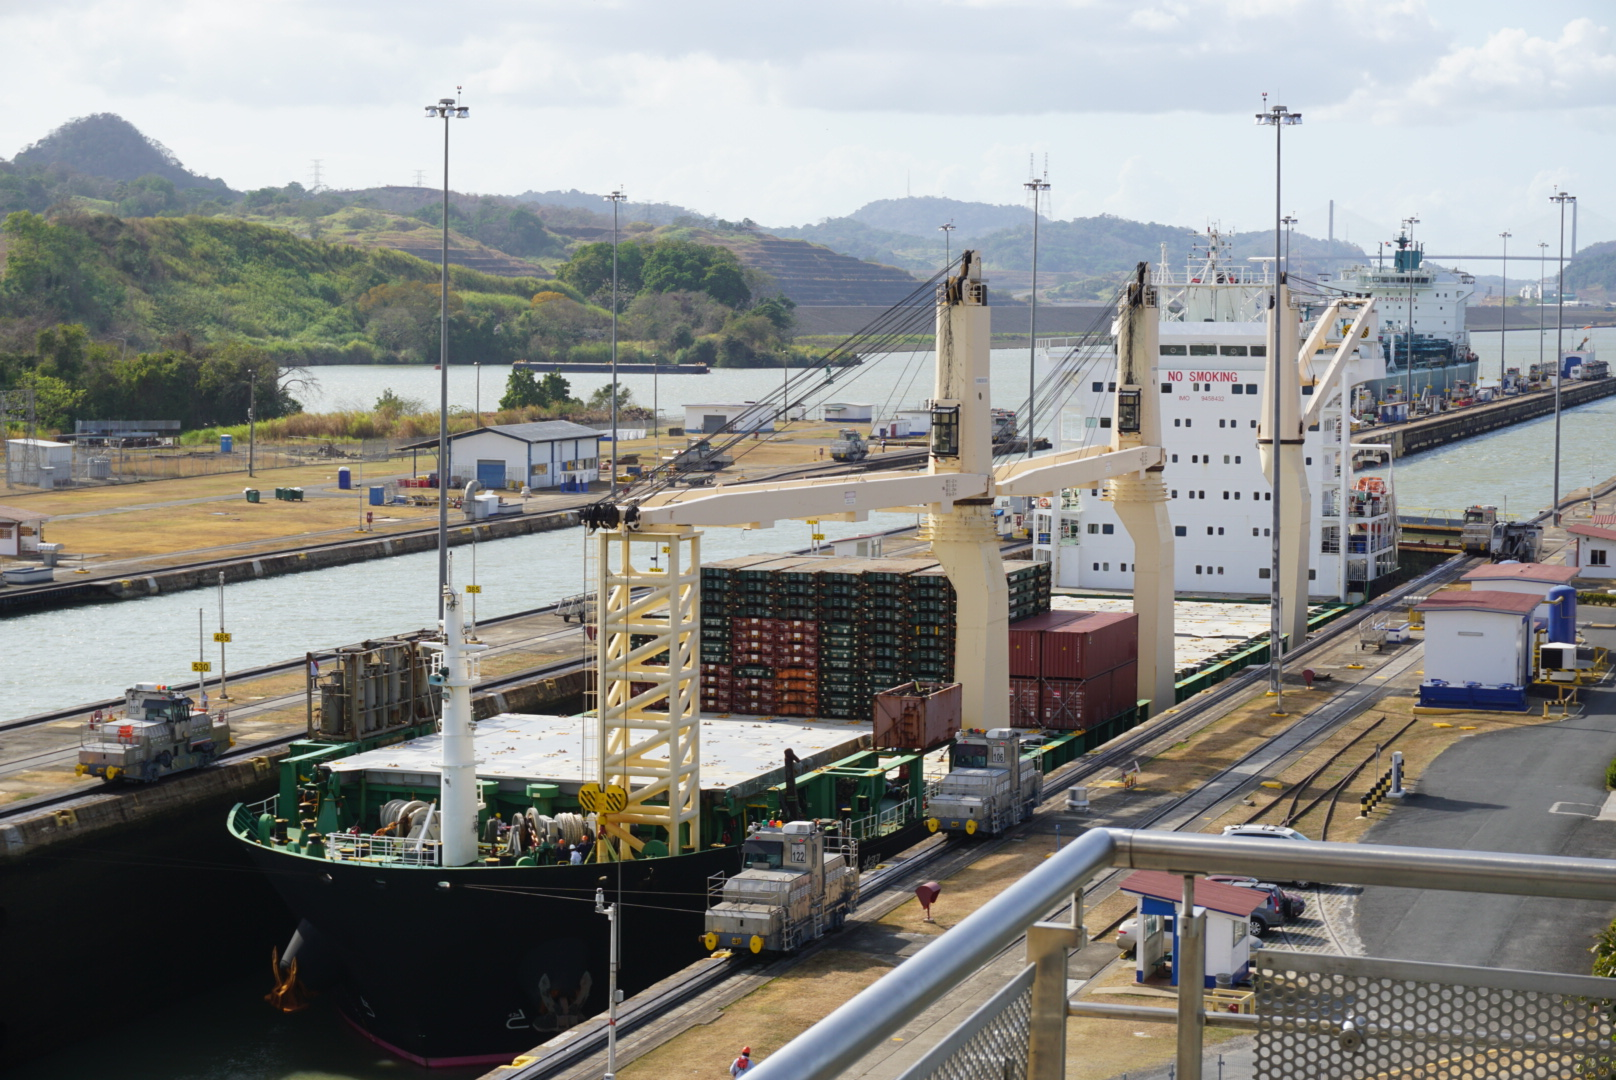 A view of one of the container ships passing through the Miraflores Locks at the Panama Canal.